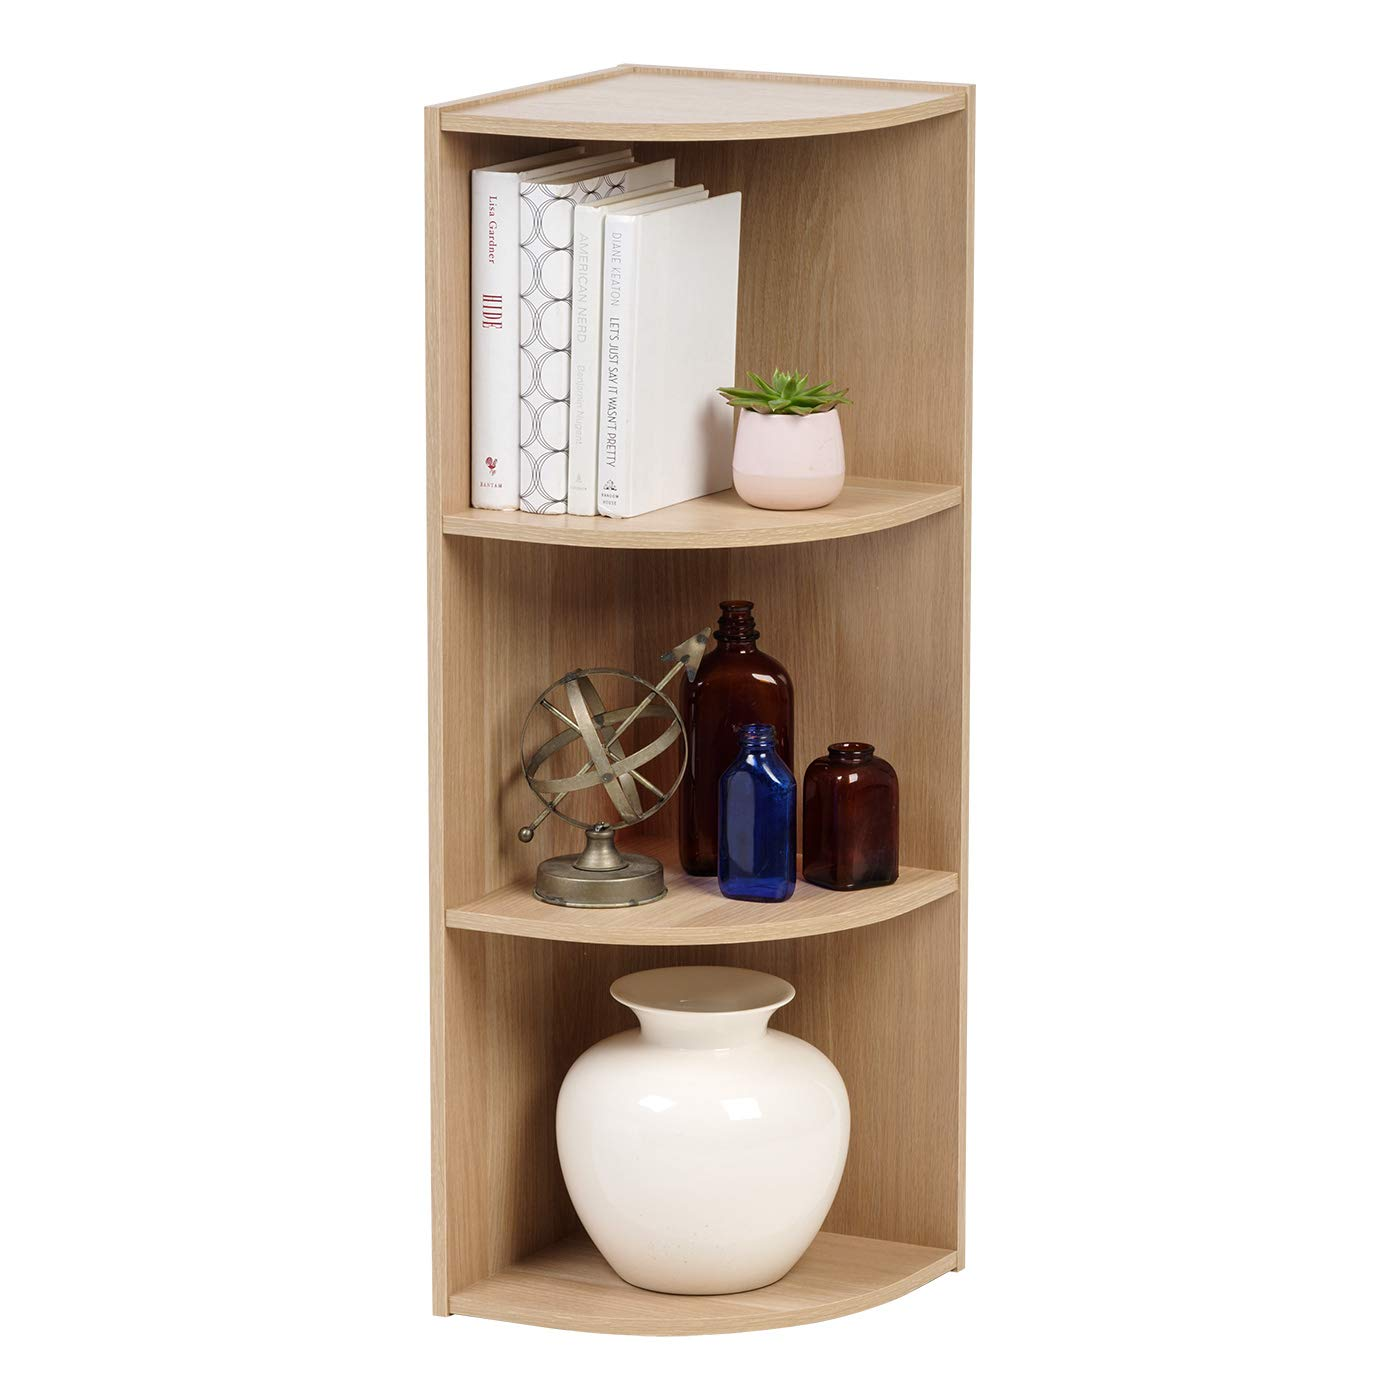 IRIS USA FBA_ 3-Tier Corner Curved Shelf Organizer, Light Brown